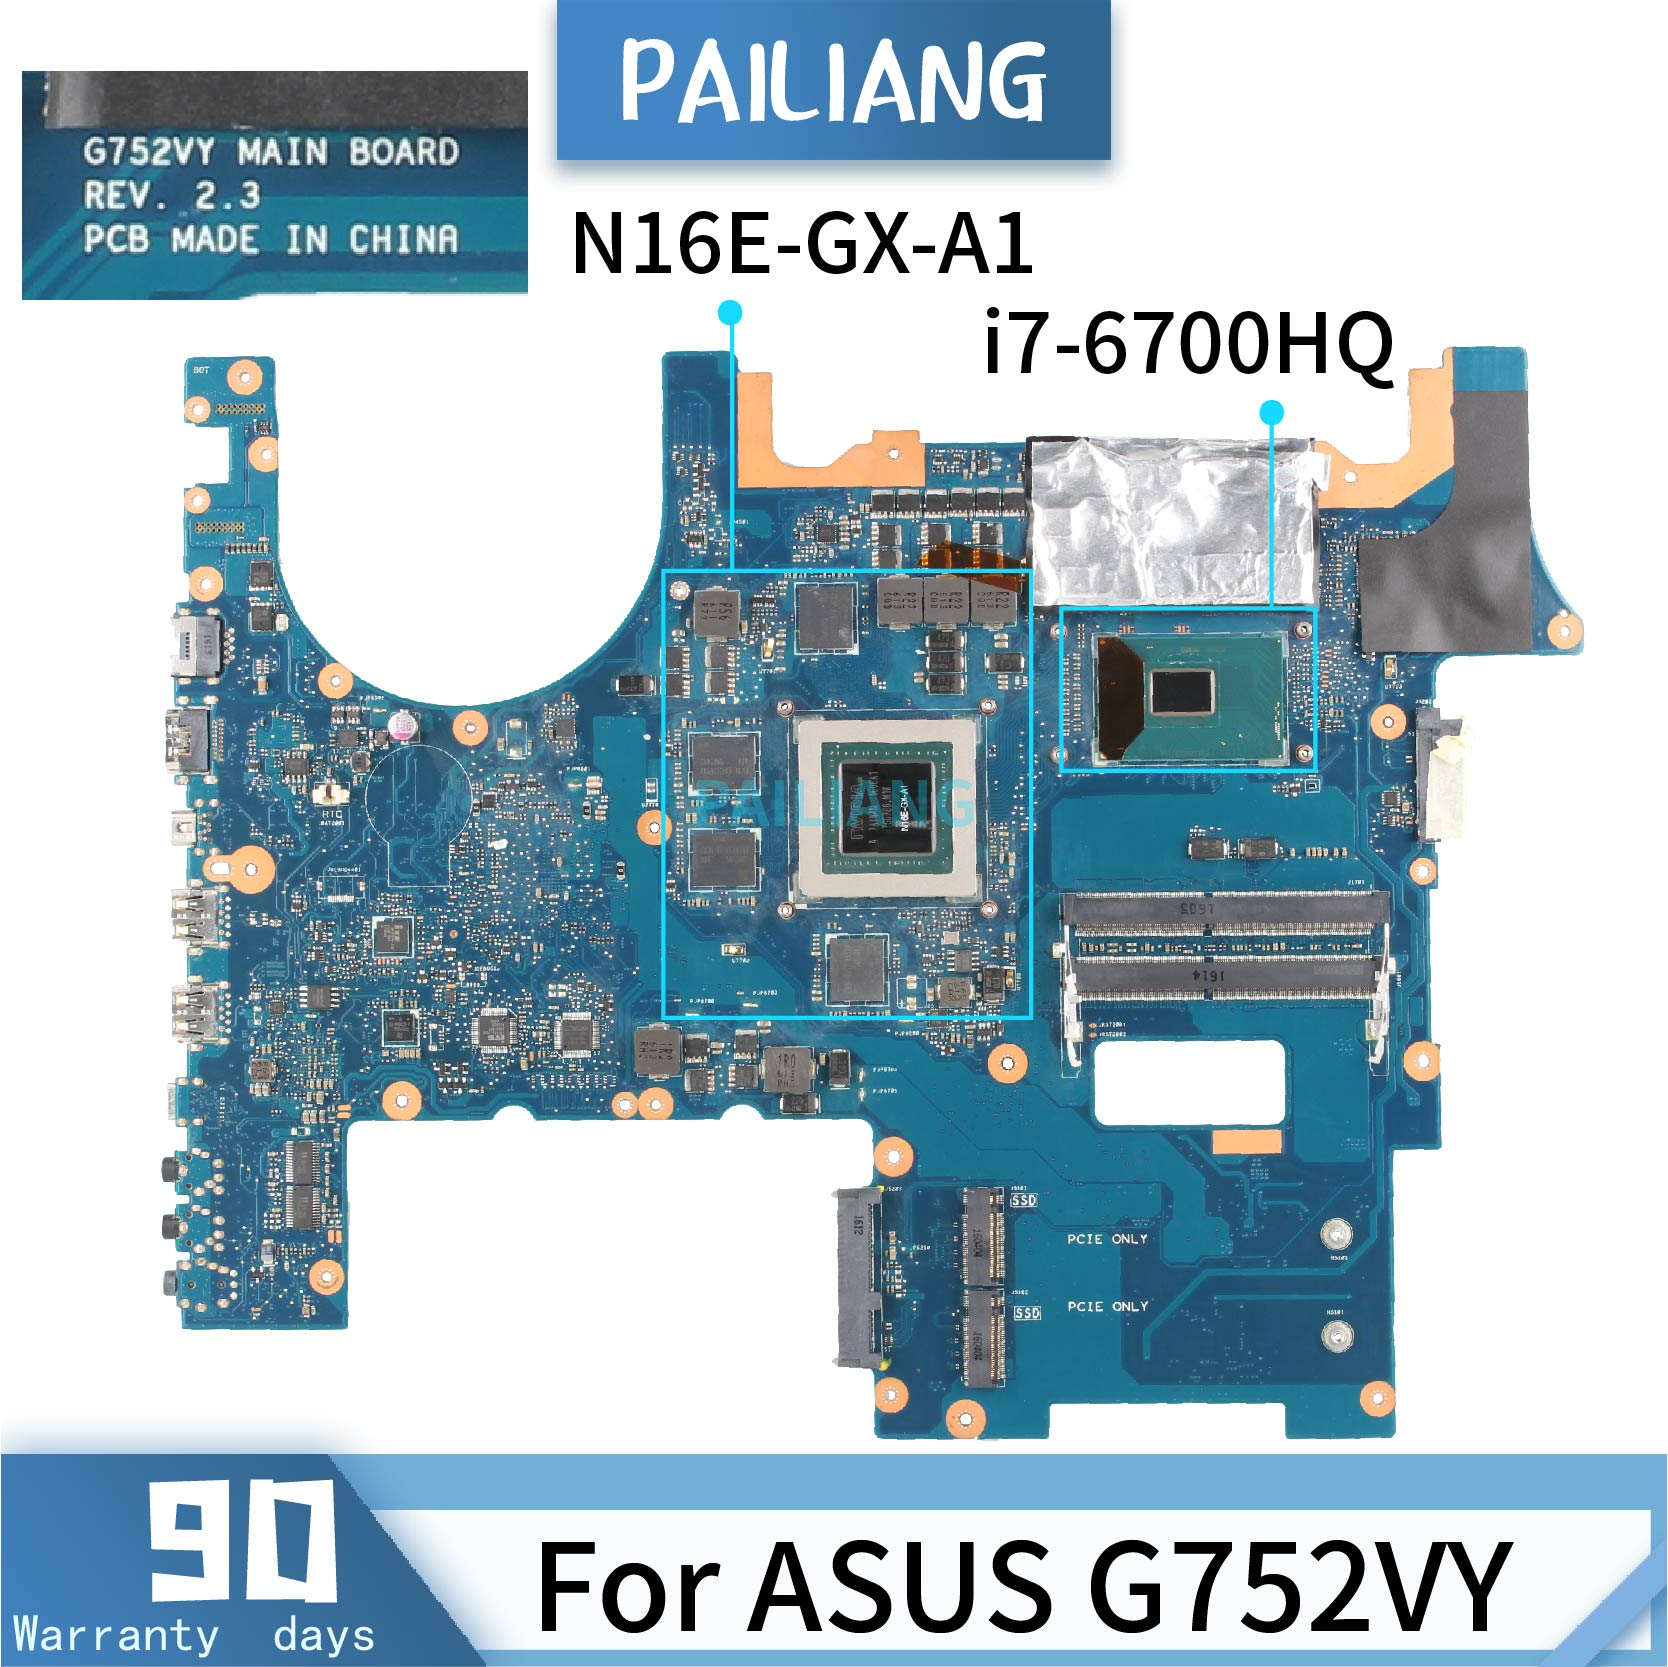 PAILIANG Laptop motherboard For ASUS G752VY REV:2.3 Mainboard Core SR2FQ <font><b>i7</b></font>-<font><b>6700HQ</b></font> N16E-GX-A1 GTX980M DDR4 image